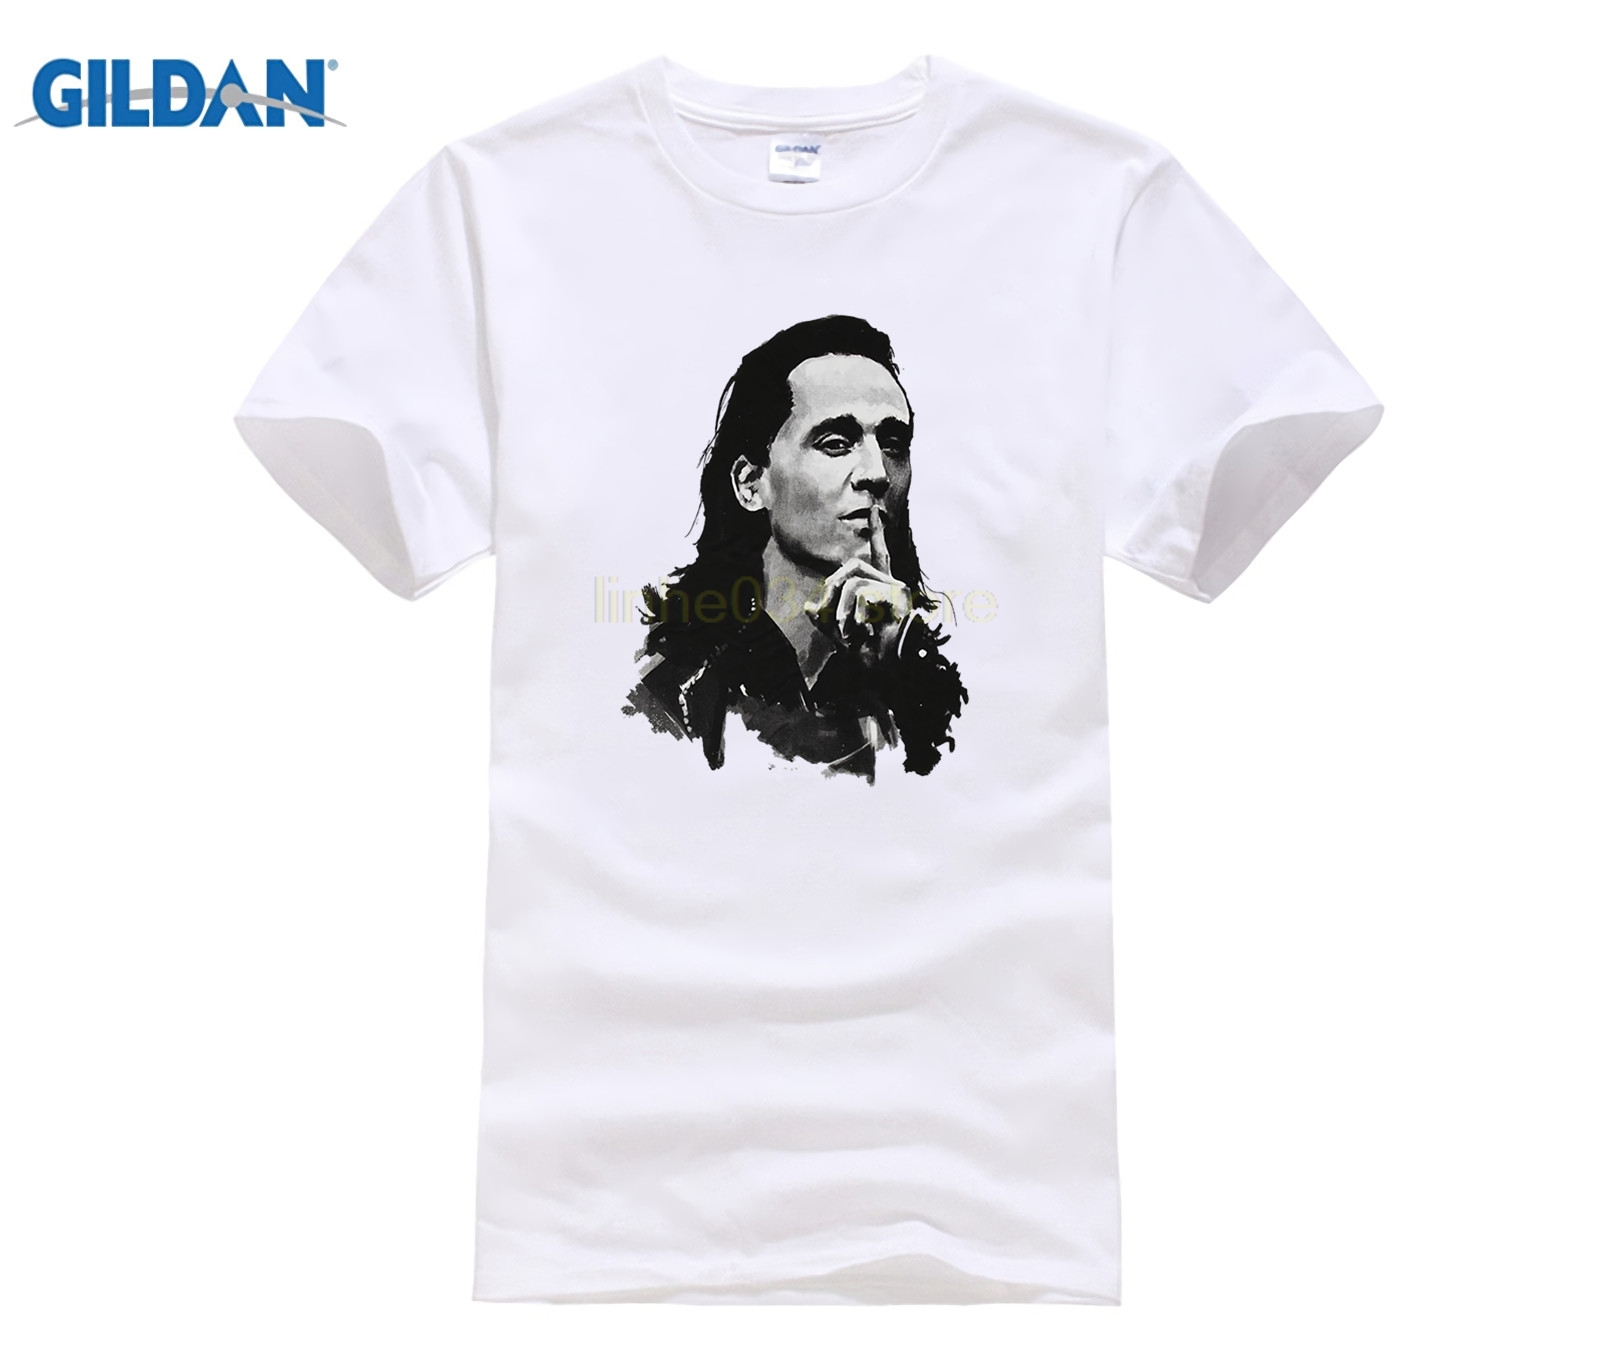 Gildan New Fashion Mens Short Sleeve Tshirt Cotton ...